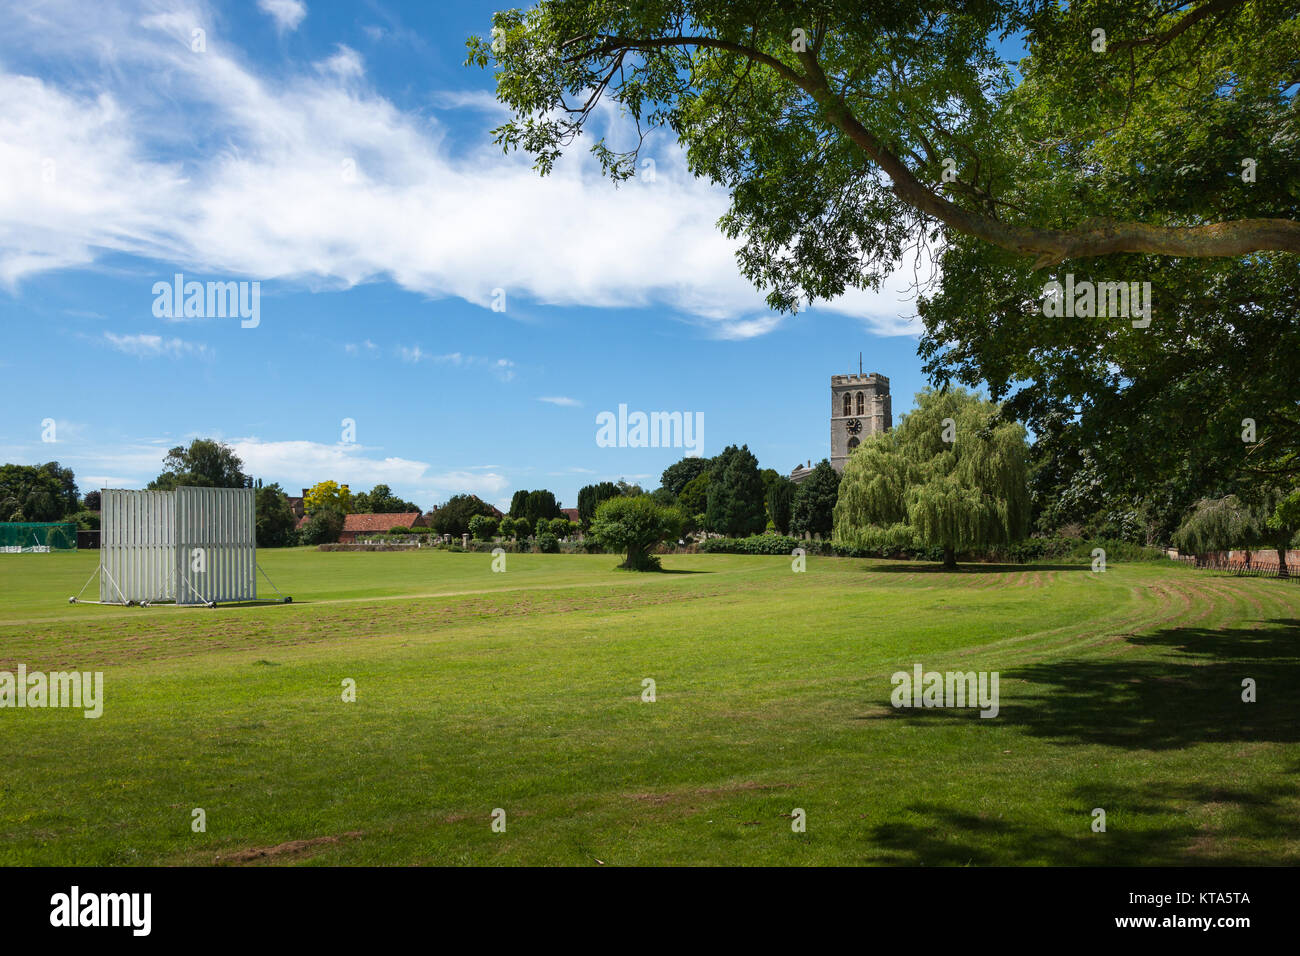 Cricket ground with church in background Thame Oxfordshire UK - Stock Image